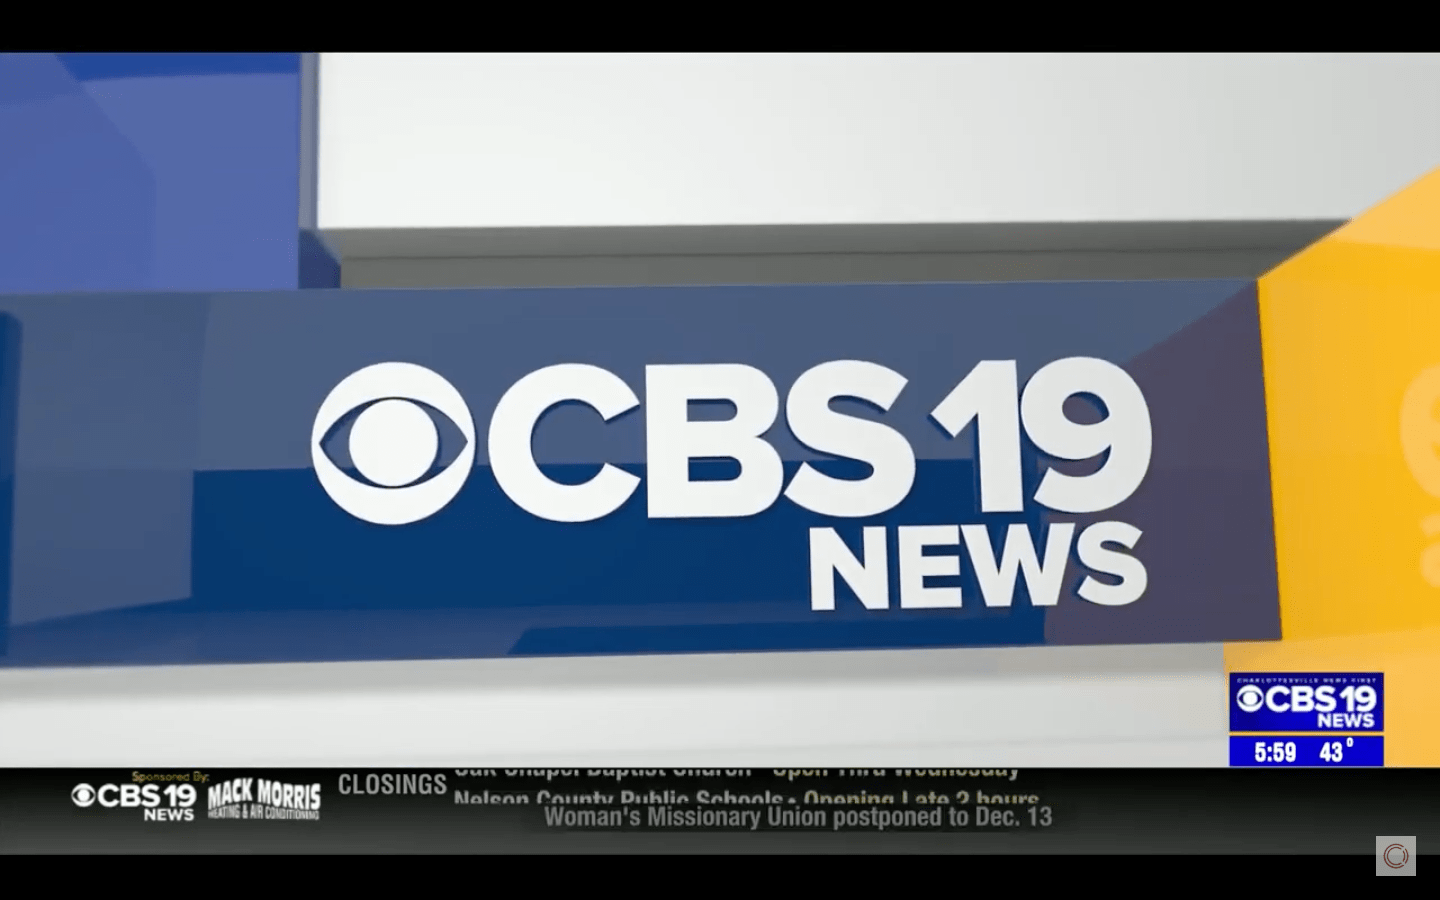 CBS 19 News Charlottesville – Laundry Project Story